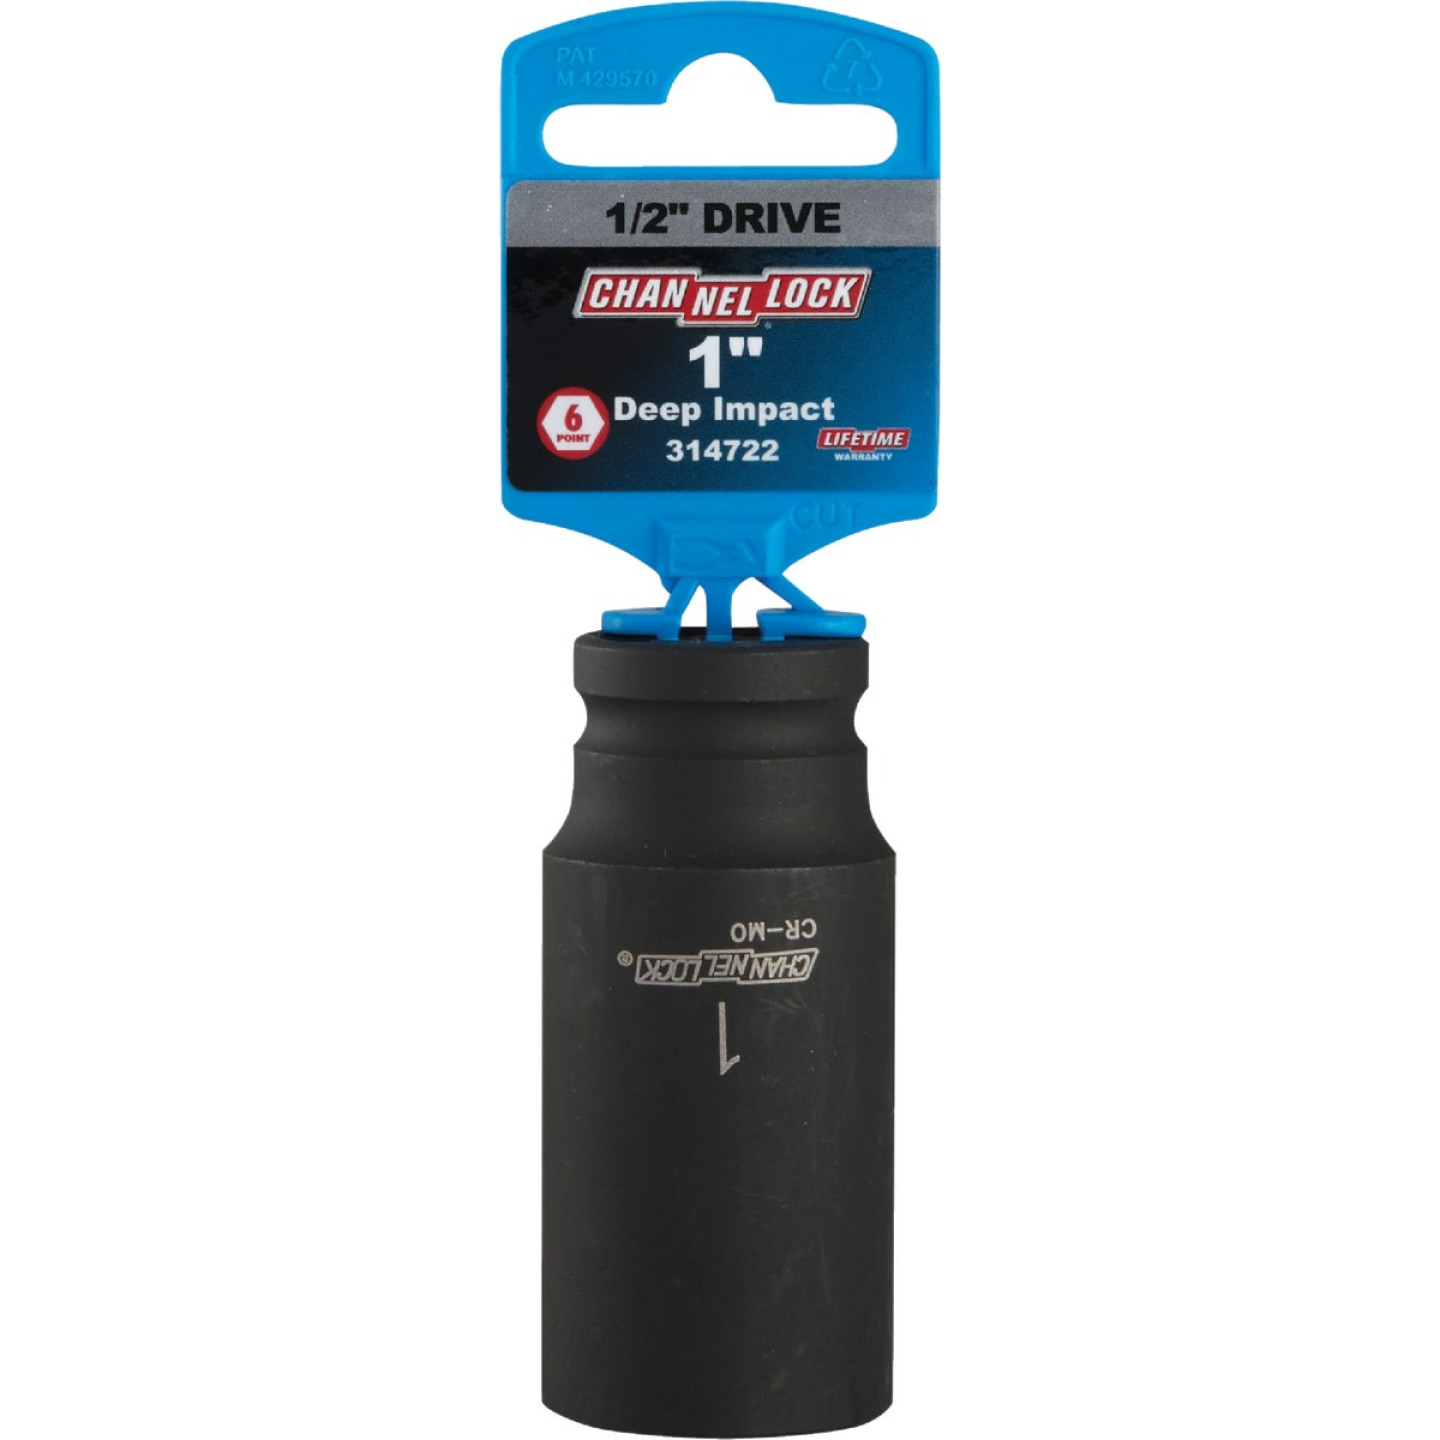 Channellock 1/2 In. Drive 1 In. 6-Point Deep Standard Impact Socket Image 2